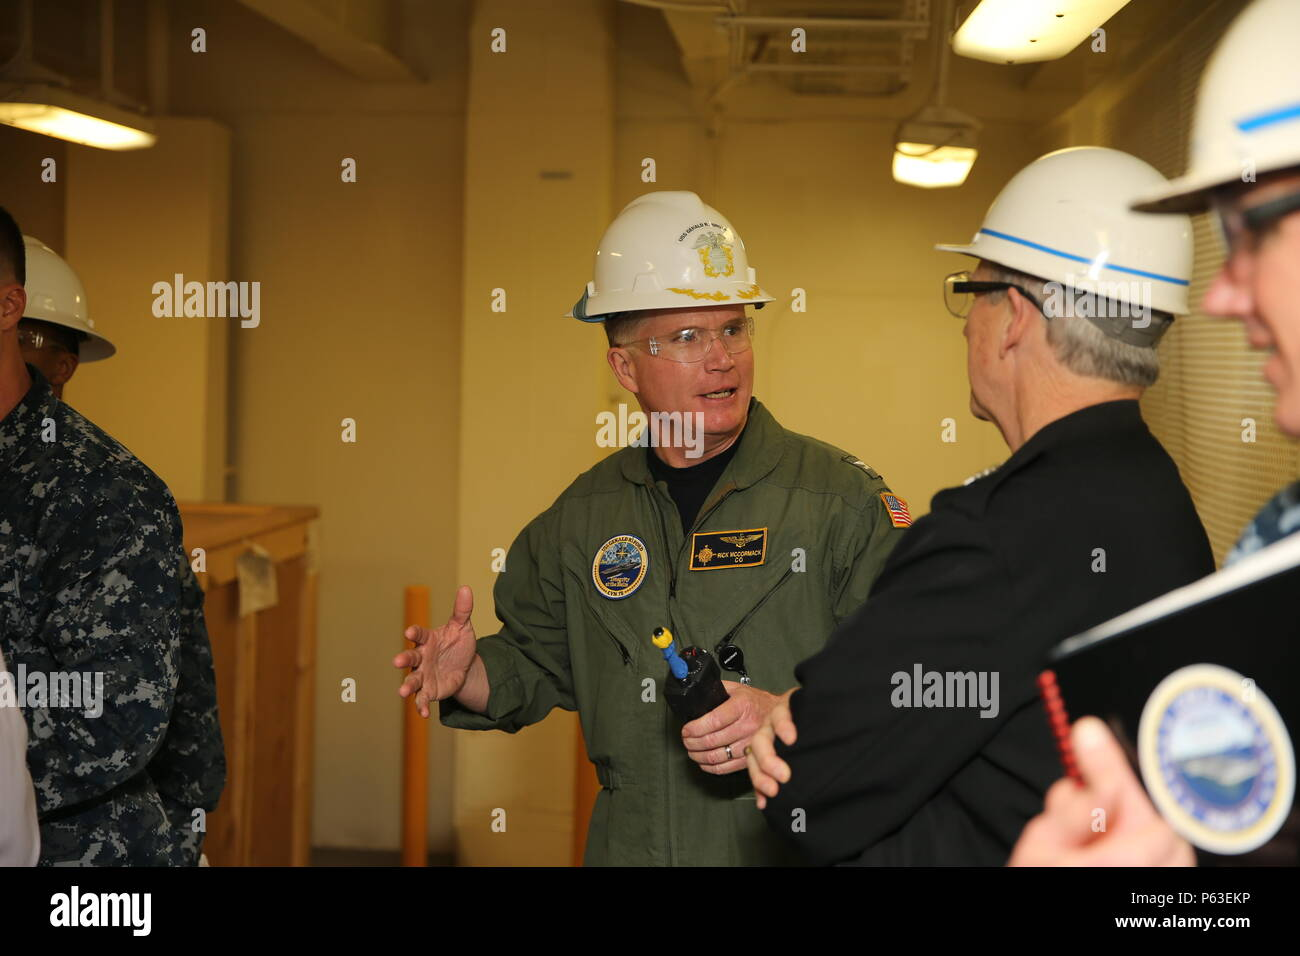 NEWPORT NEWS, Va. (Apr 20, 2016) -- Commanding Officer of Pre-Commissioning Unit Gerald R. Ford (CVN 78) Capt. Richard McCormick talks to Rear Adm. Thomas Moore during a tour of the ship. Ford is the first of a new class of aircraft carriers currently under construction by Huntington Ingalls Industries Newport News Shipbuilding. (U.S. Navy photo by Mass Communication Specialist Seaman Apprentice Connor Loessin/Released) - Stock Image